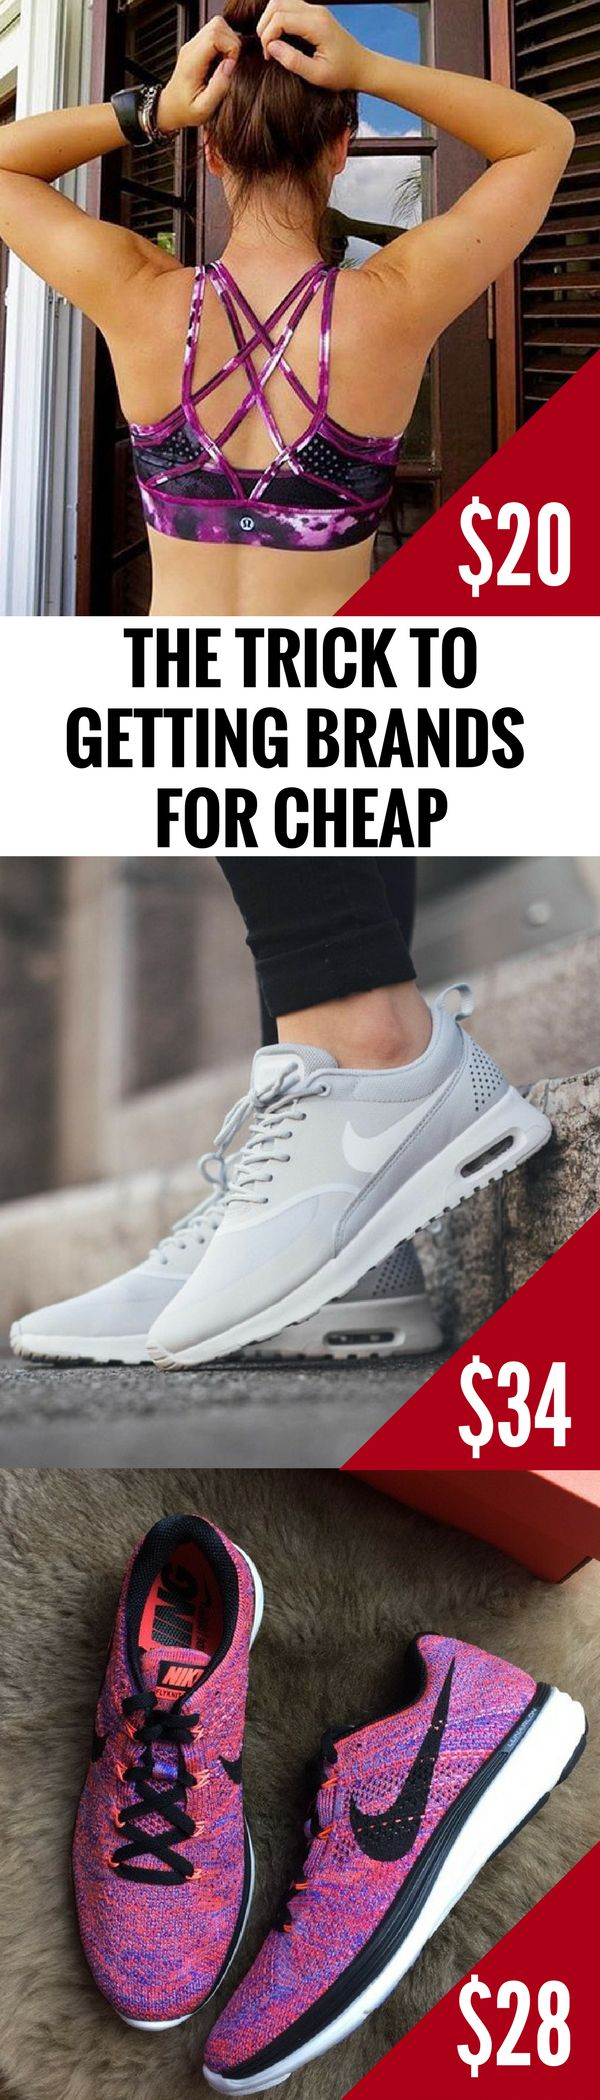 On a budget, but want to look on point? Now you can! Shop all your favorite brands and styles, like Nike, Lululemon, VS Pink and hundreds more, at Up to 70% off retail. Click to download the FREE app now! As featured in Cosmopolitan & Good Morning America.